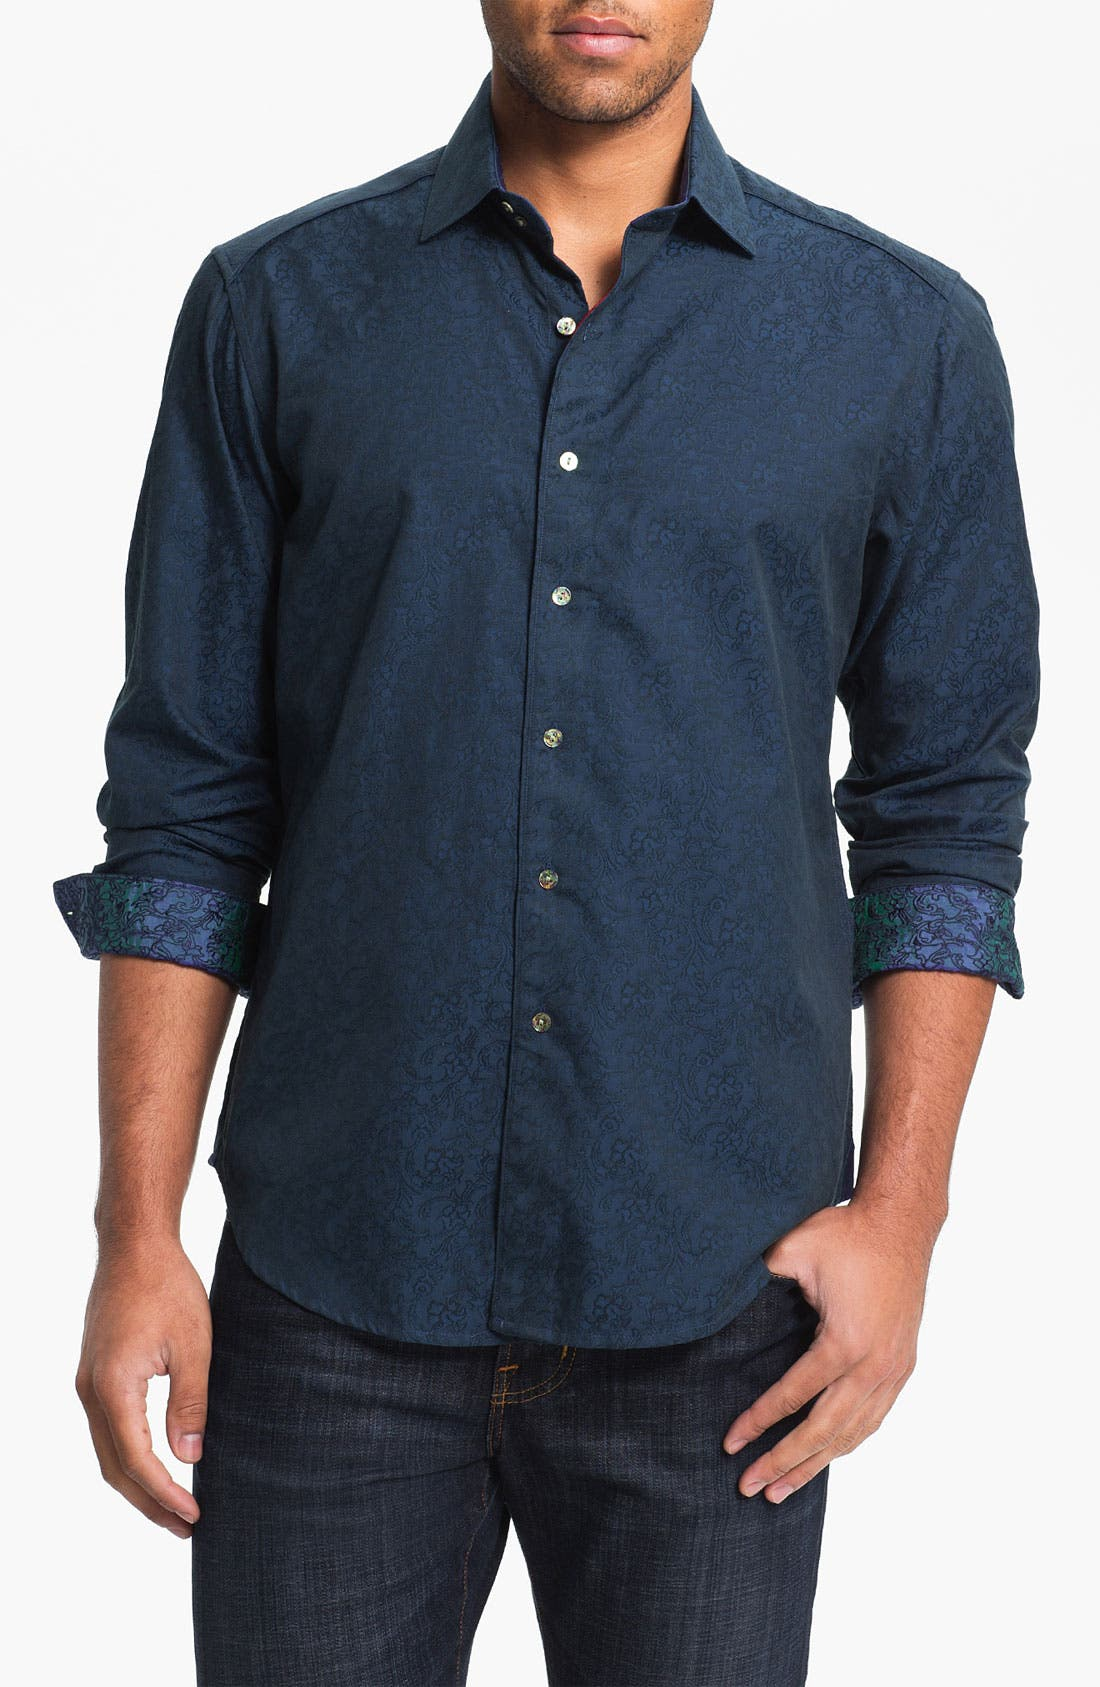 Main Image - Robert Graham 'Back Flip' Sport Shirt